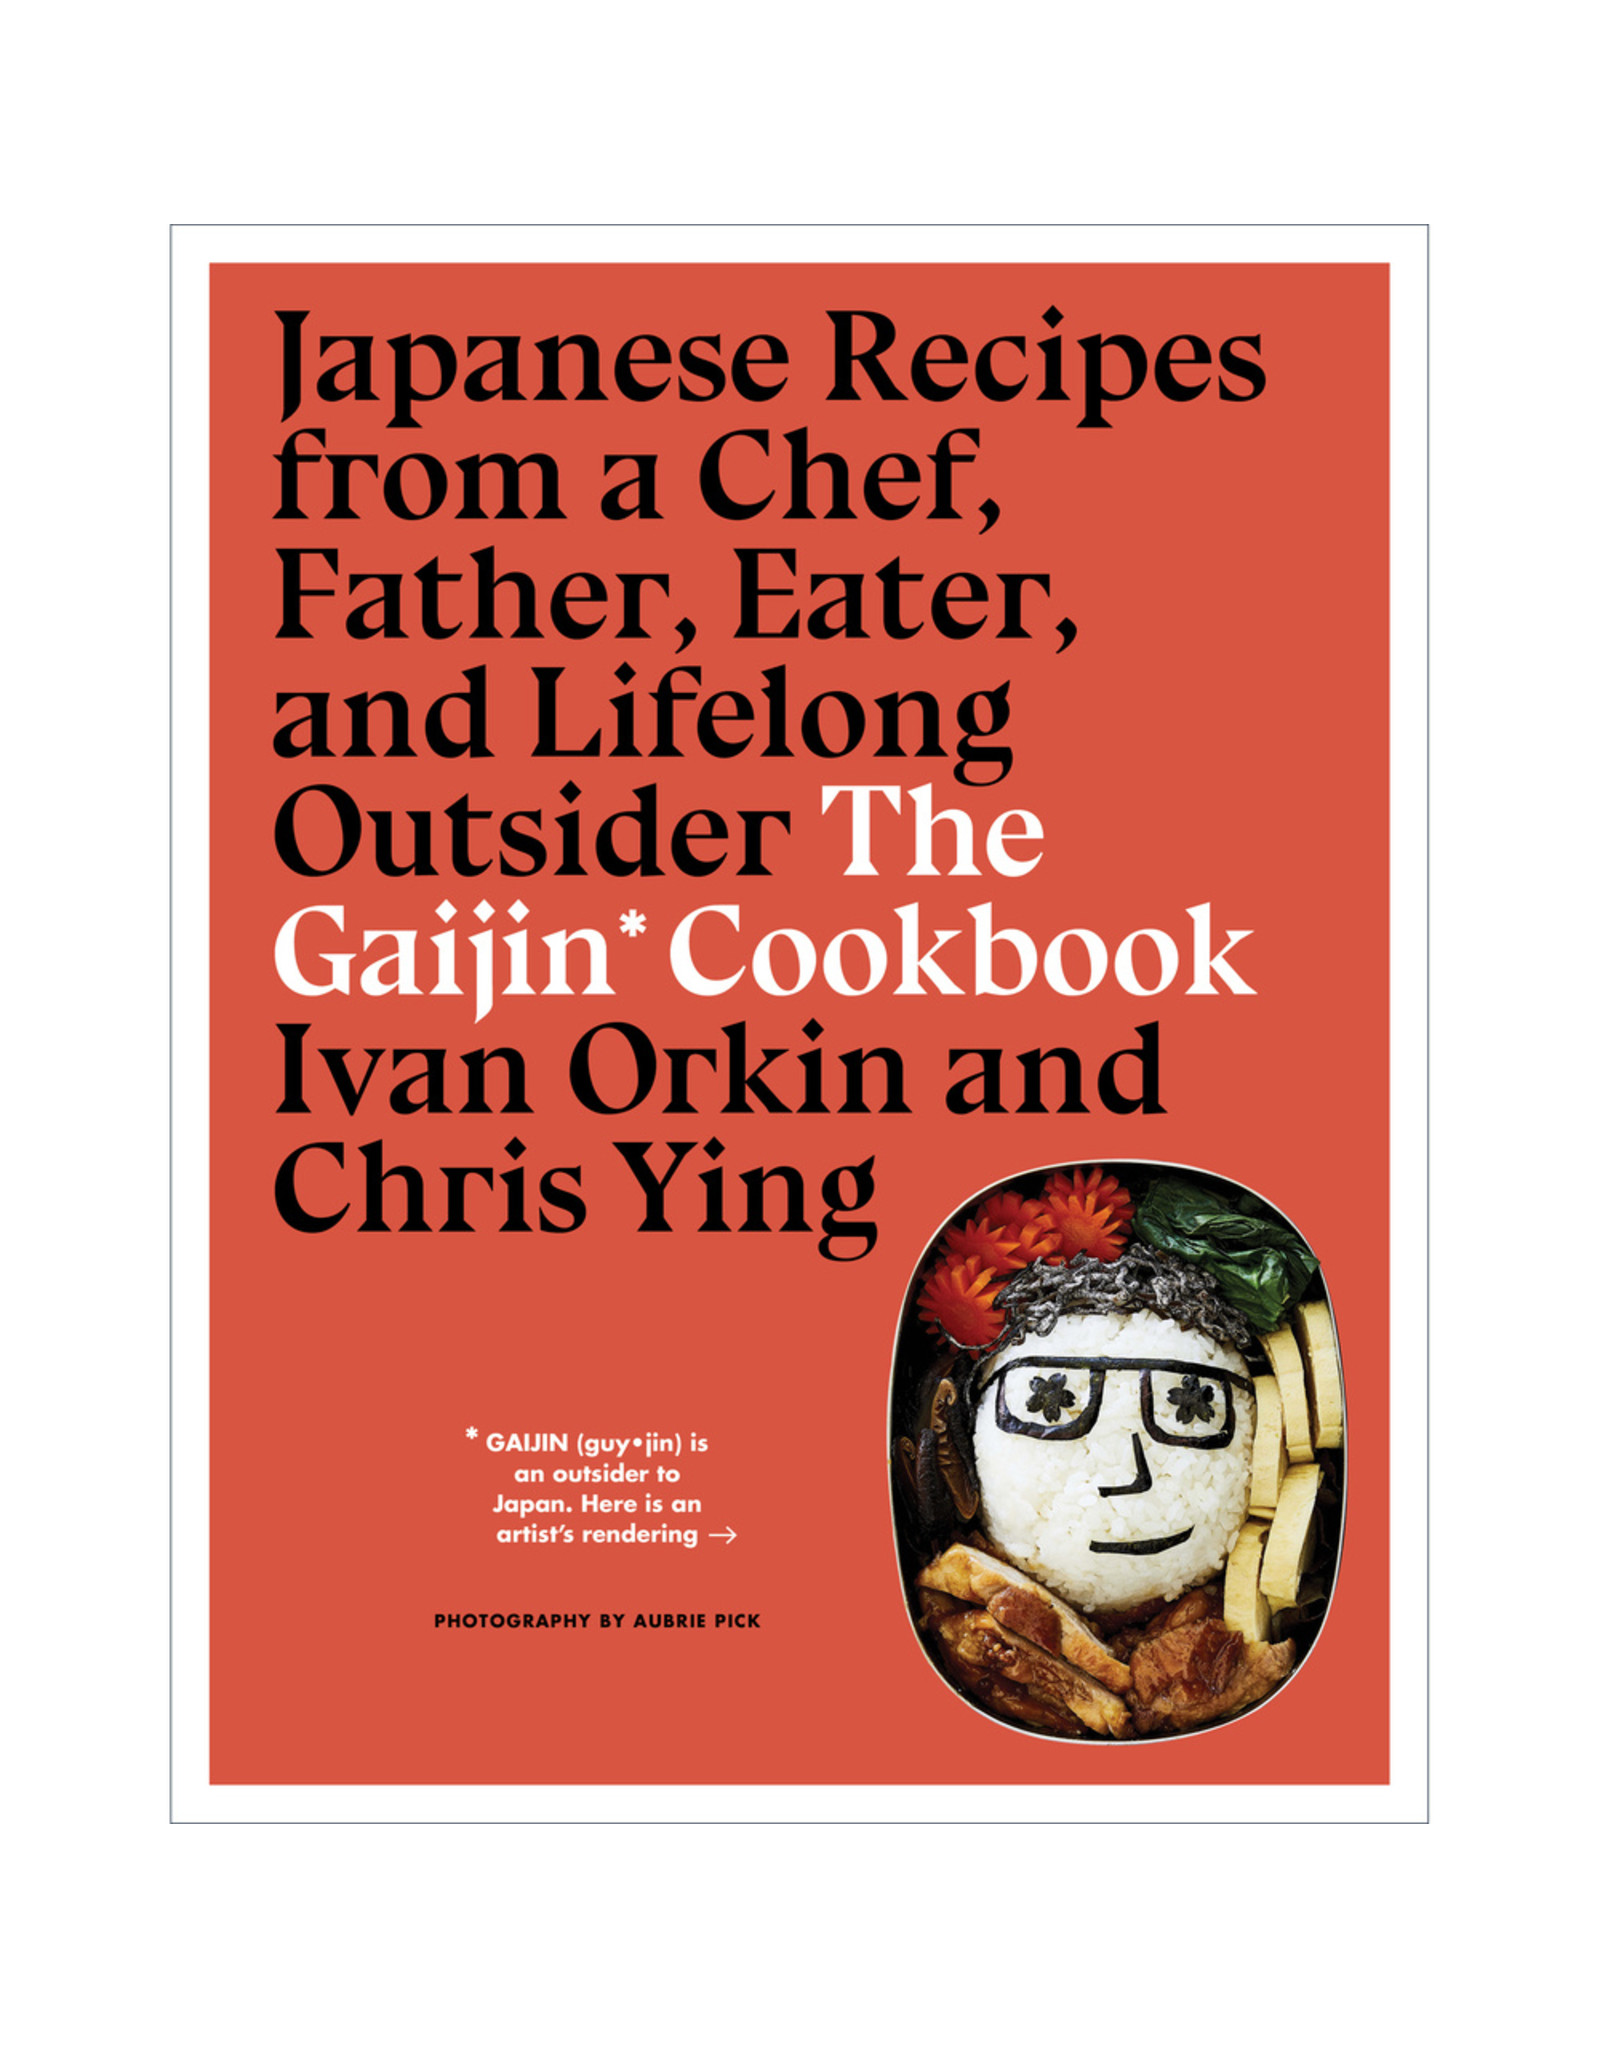 Houghton Mifflin The Gaijin Cookbook: Japanese Recipes from a Chef, Father, Eater, and Lifelong Outsider